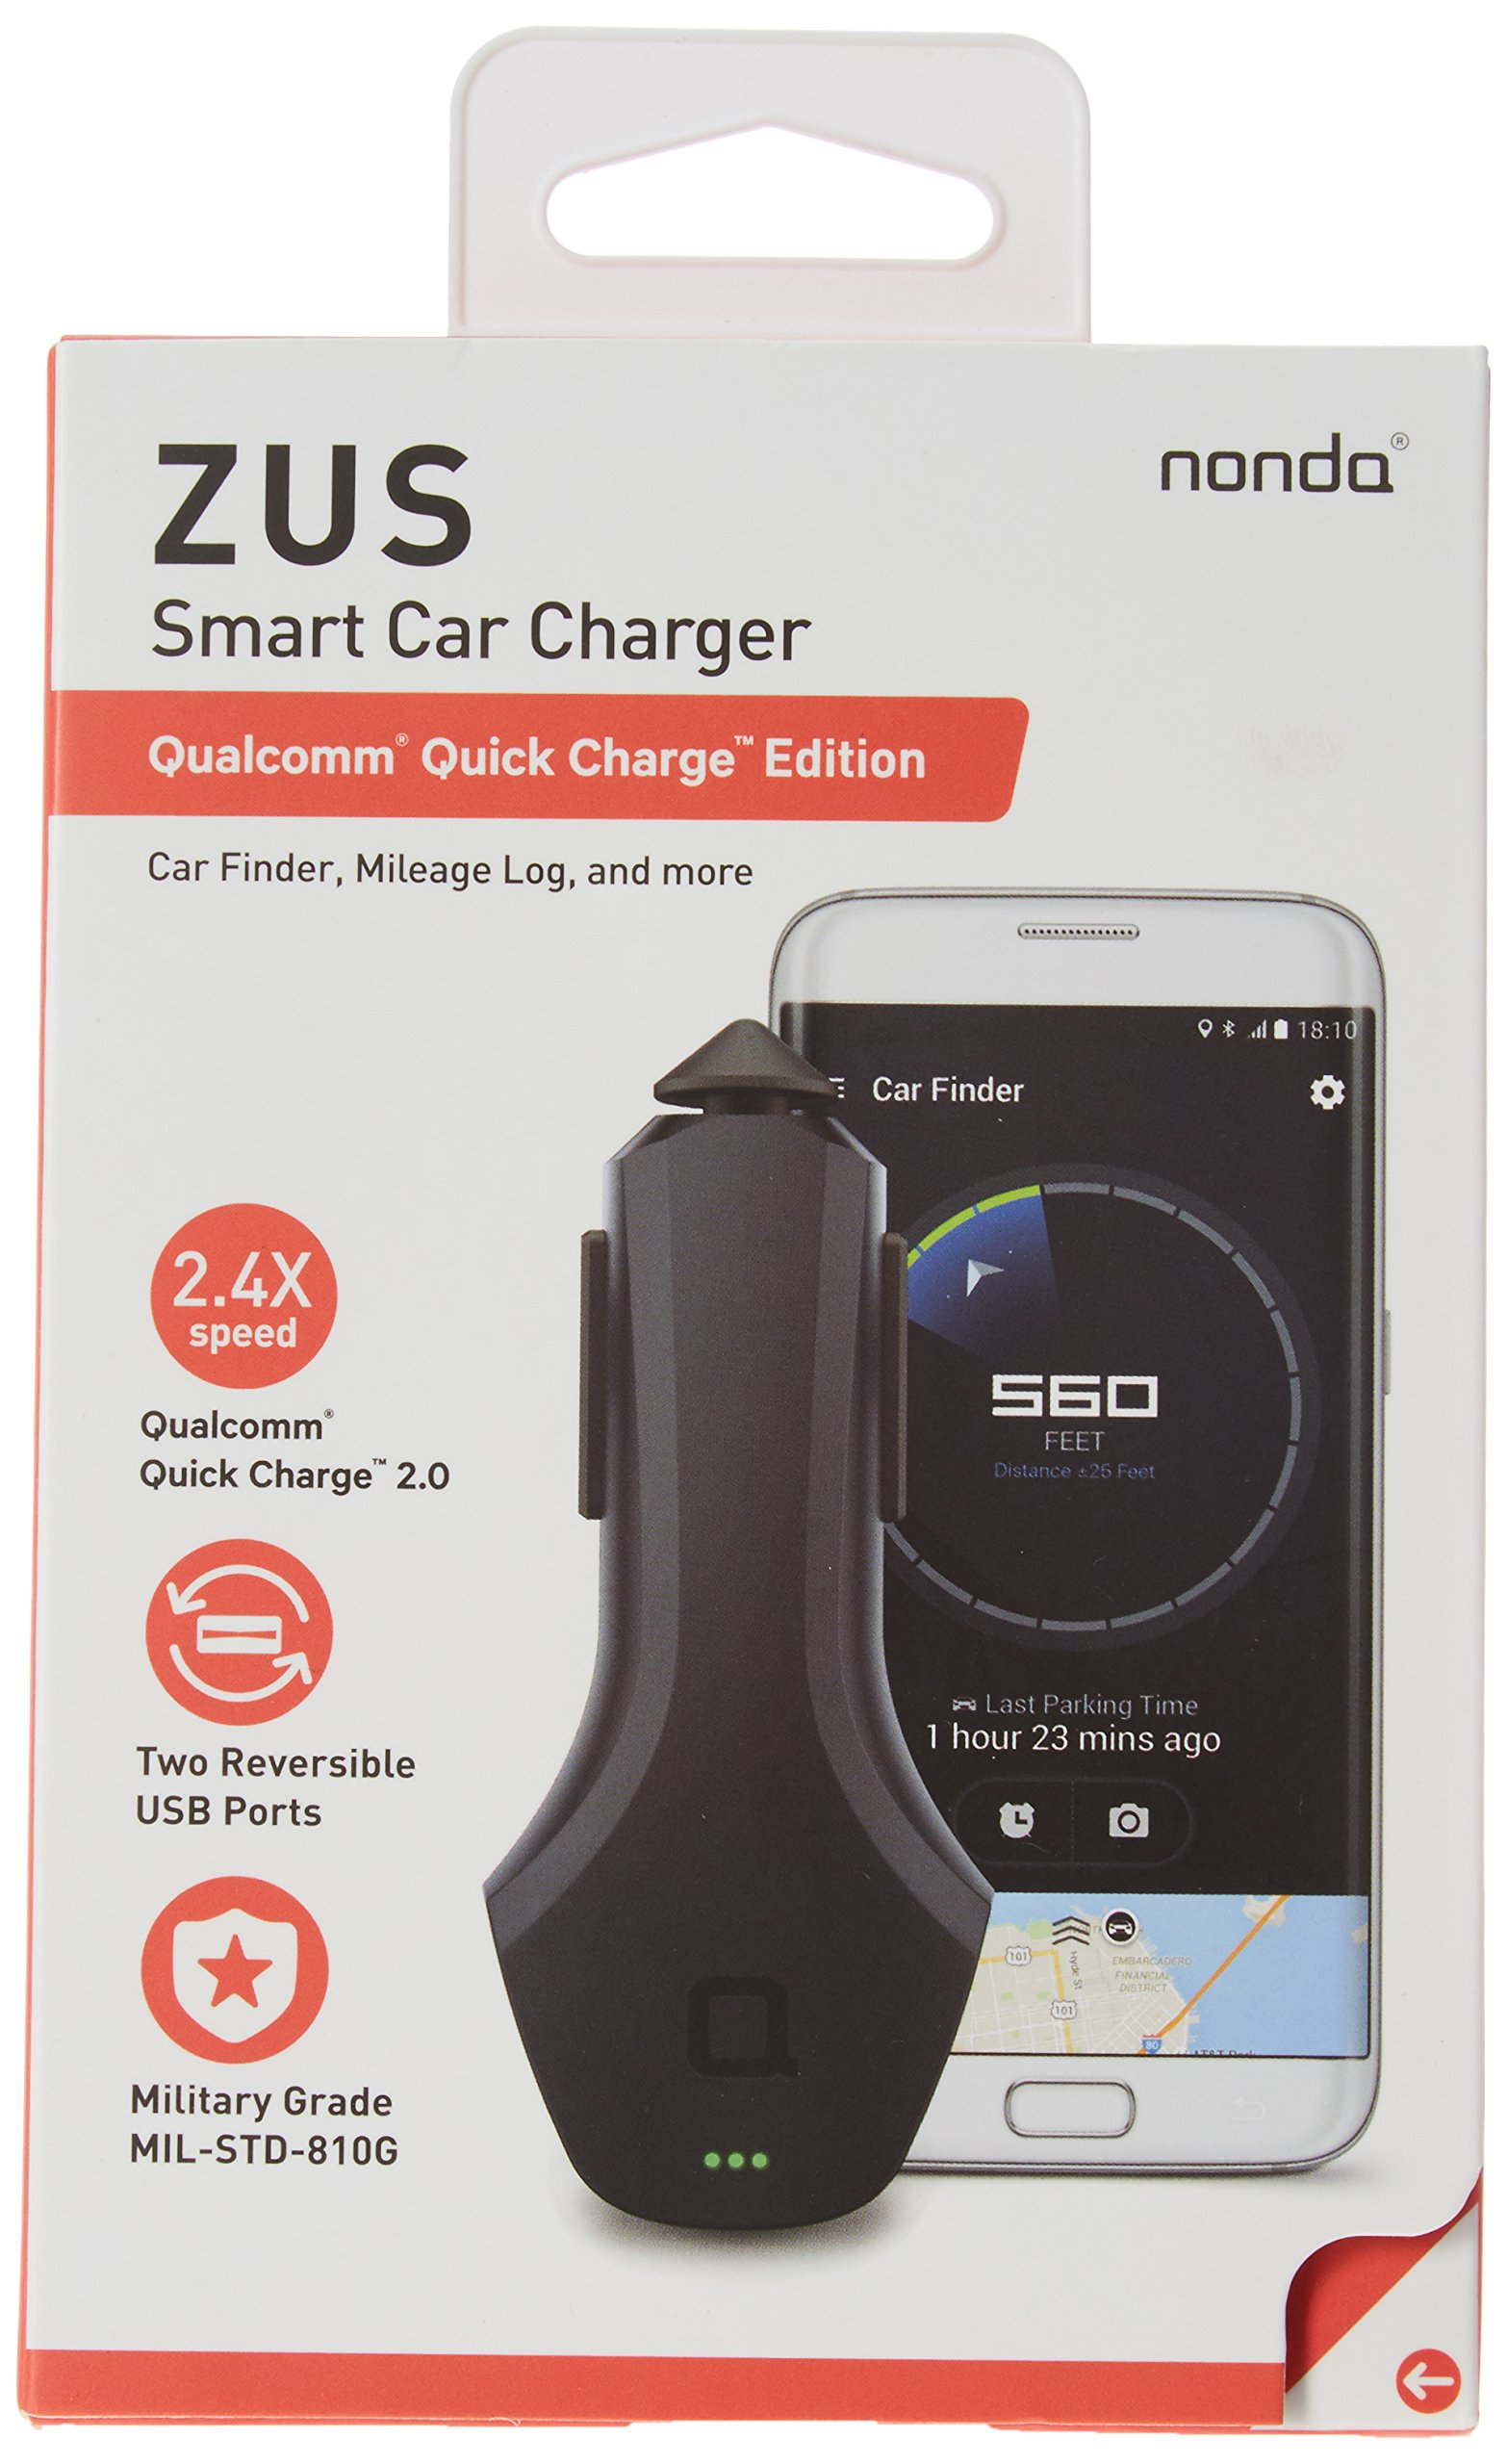 nonda ZUS Connected Car App Suite & Qualcomm Quick Charge 36W Smart Car Charger, Monitor Car Battery, Find Your Car - No OBD Port Required, Best Companion for Navdy, Automatic, Vyncs, Linxup, Carlock